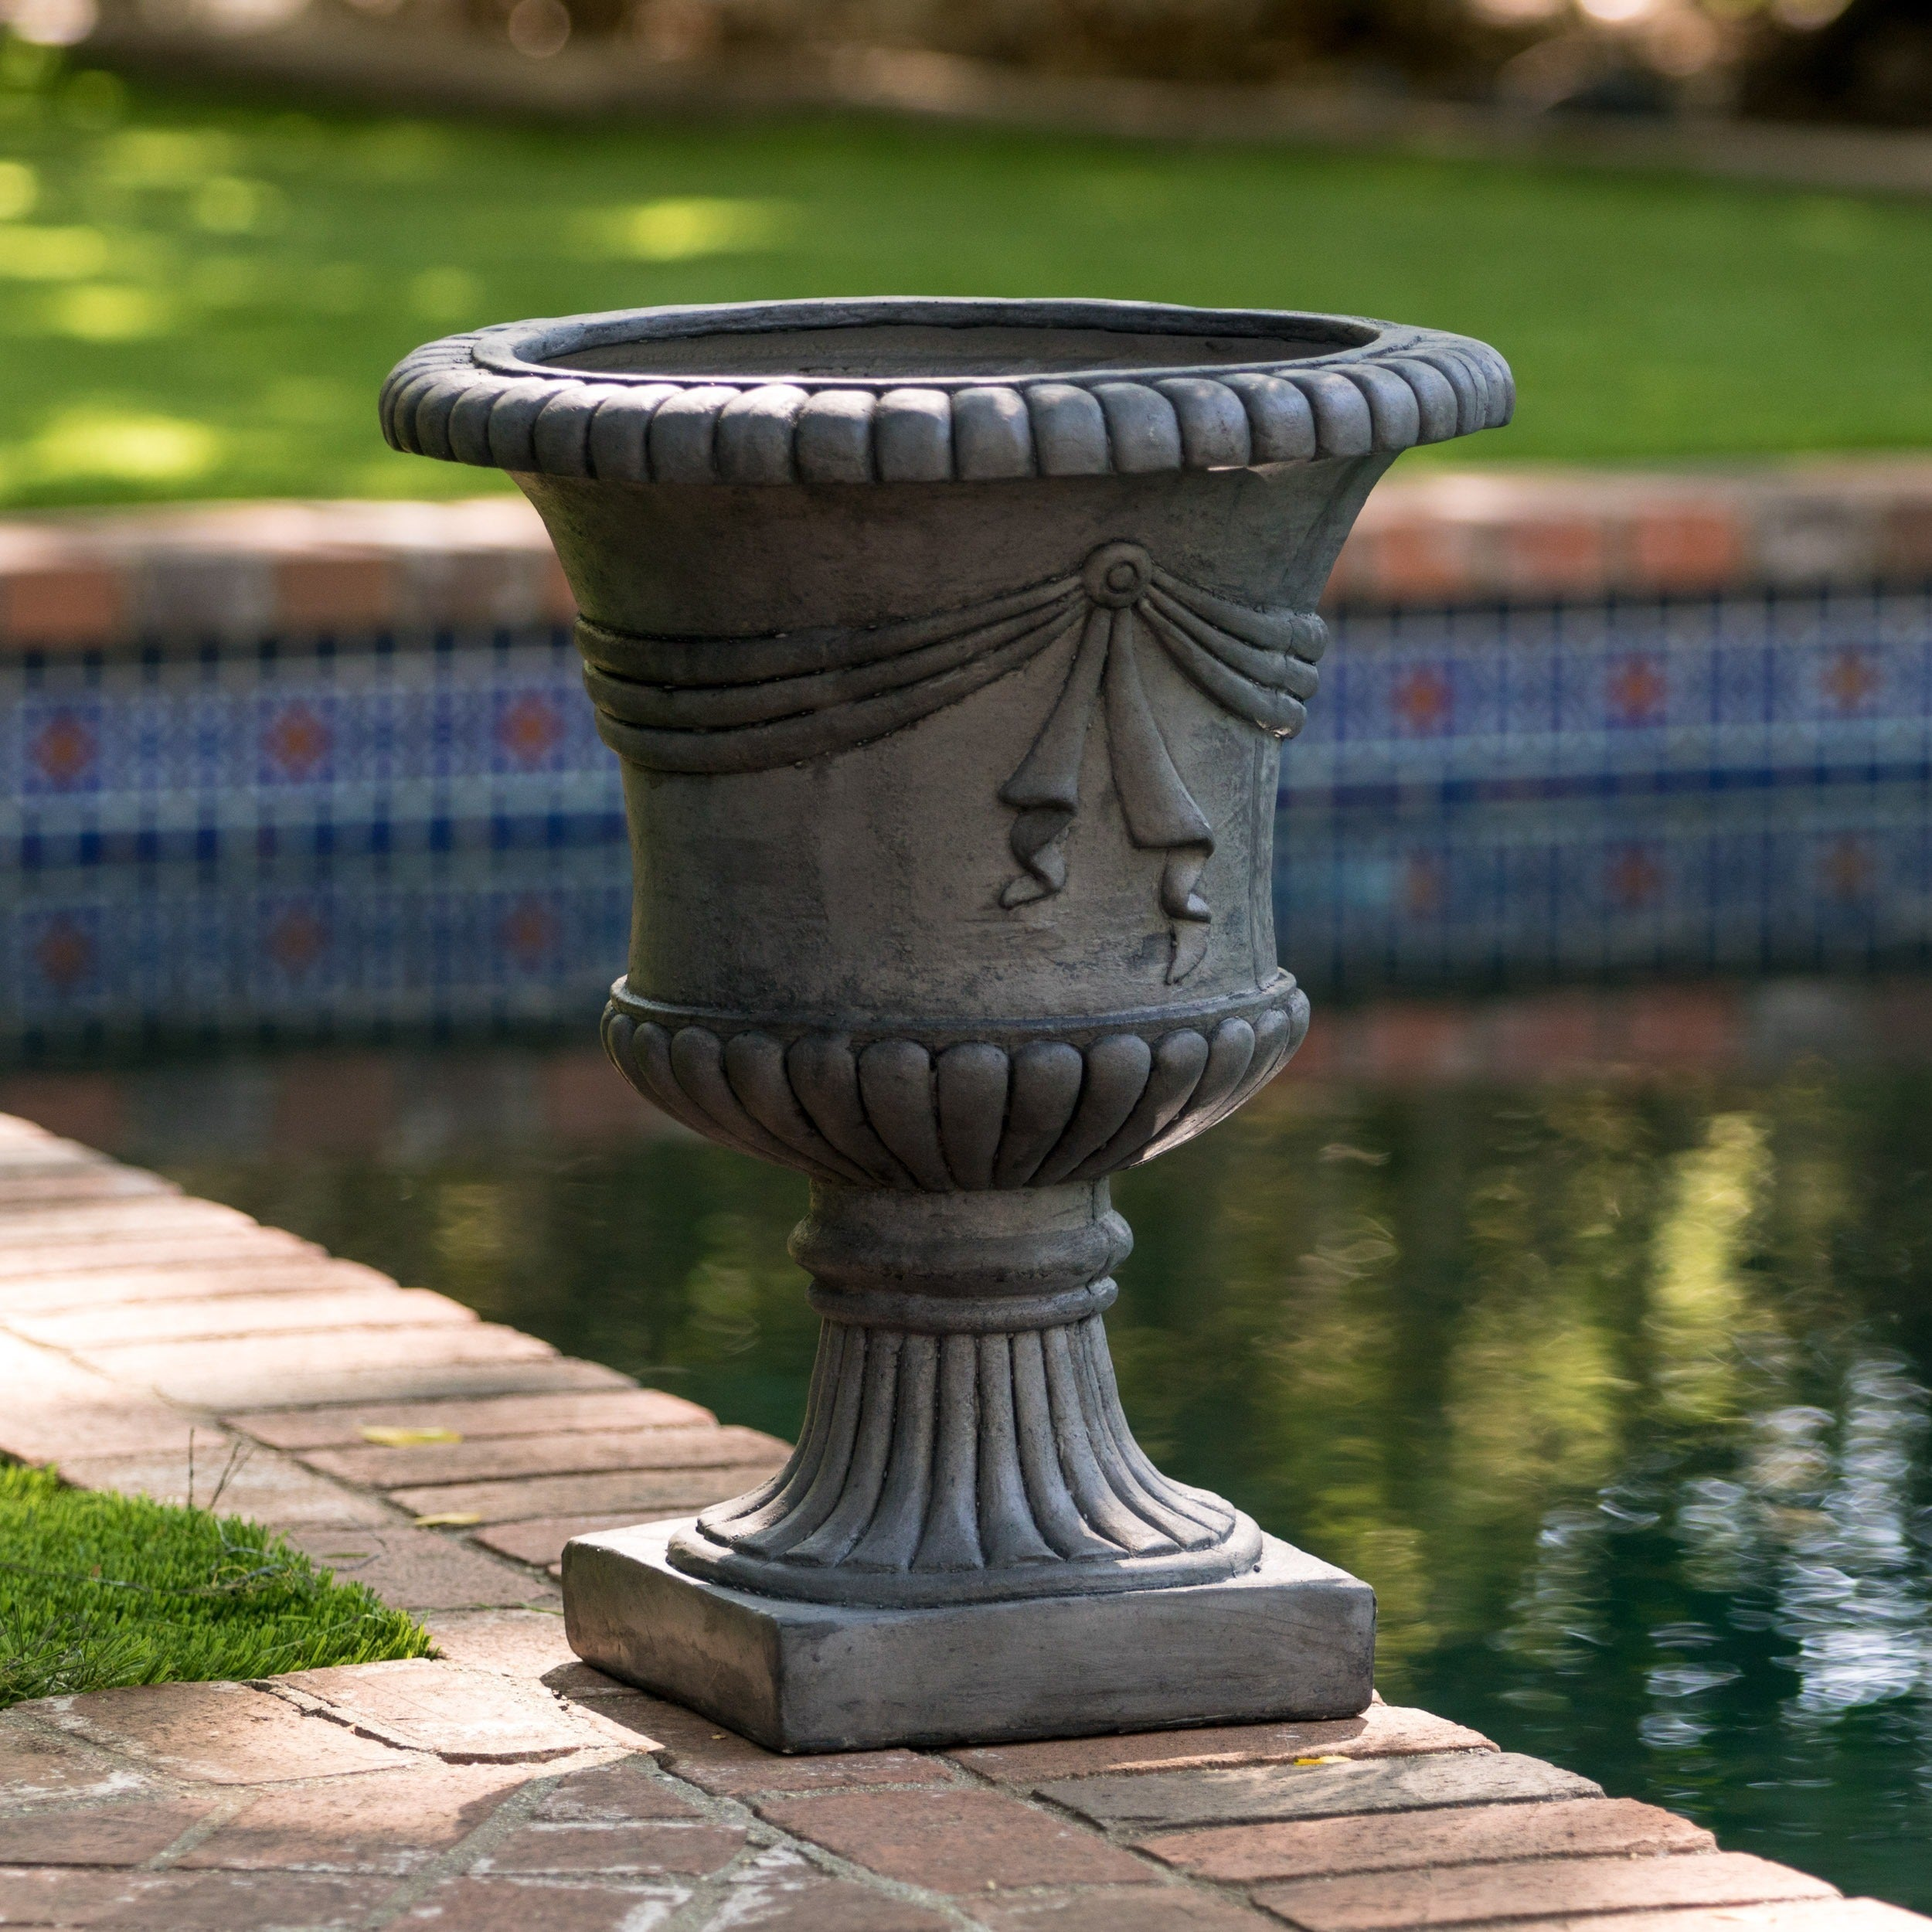 campania urn cast urns to stone international millbridge have planter it pin